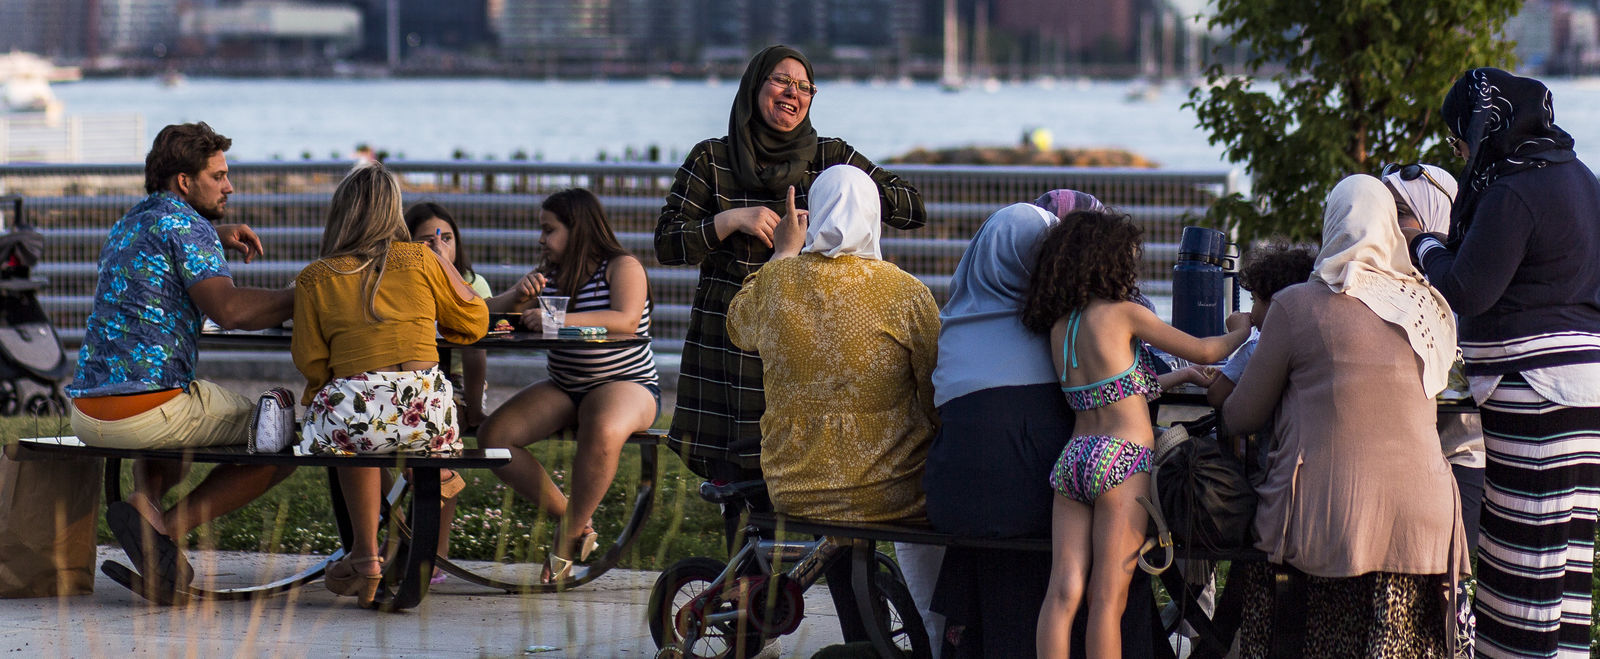 People laugh at picnic tables on Boston's waterfront.